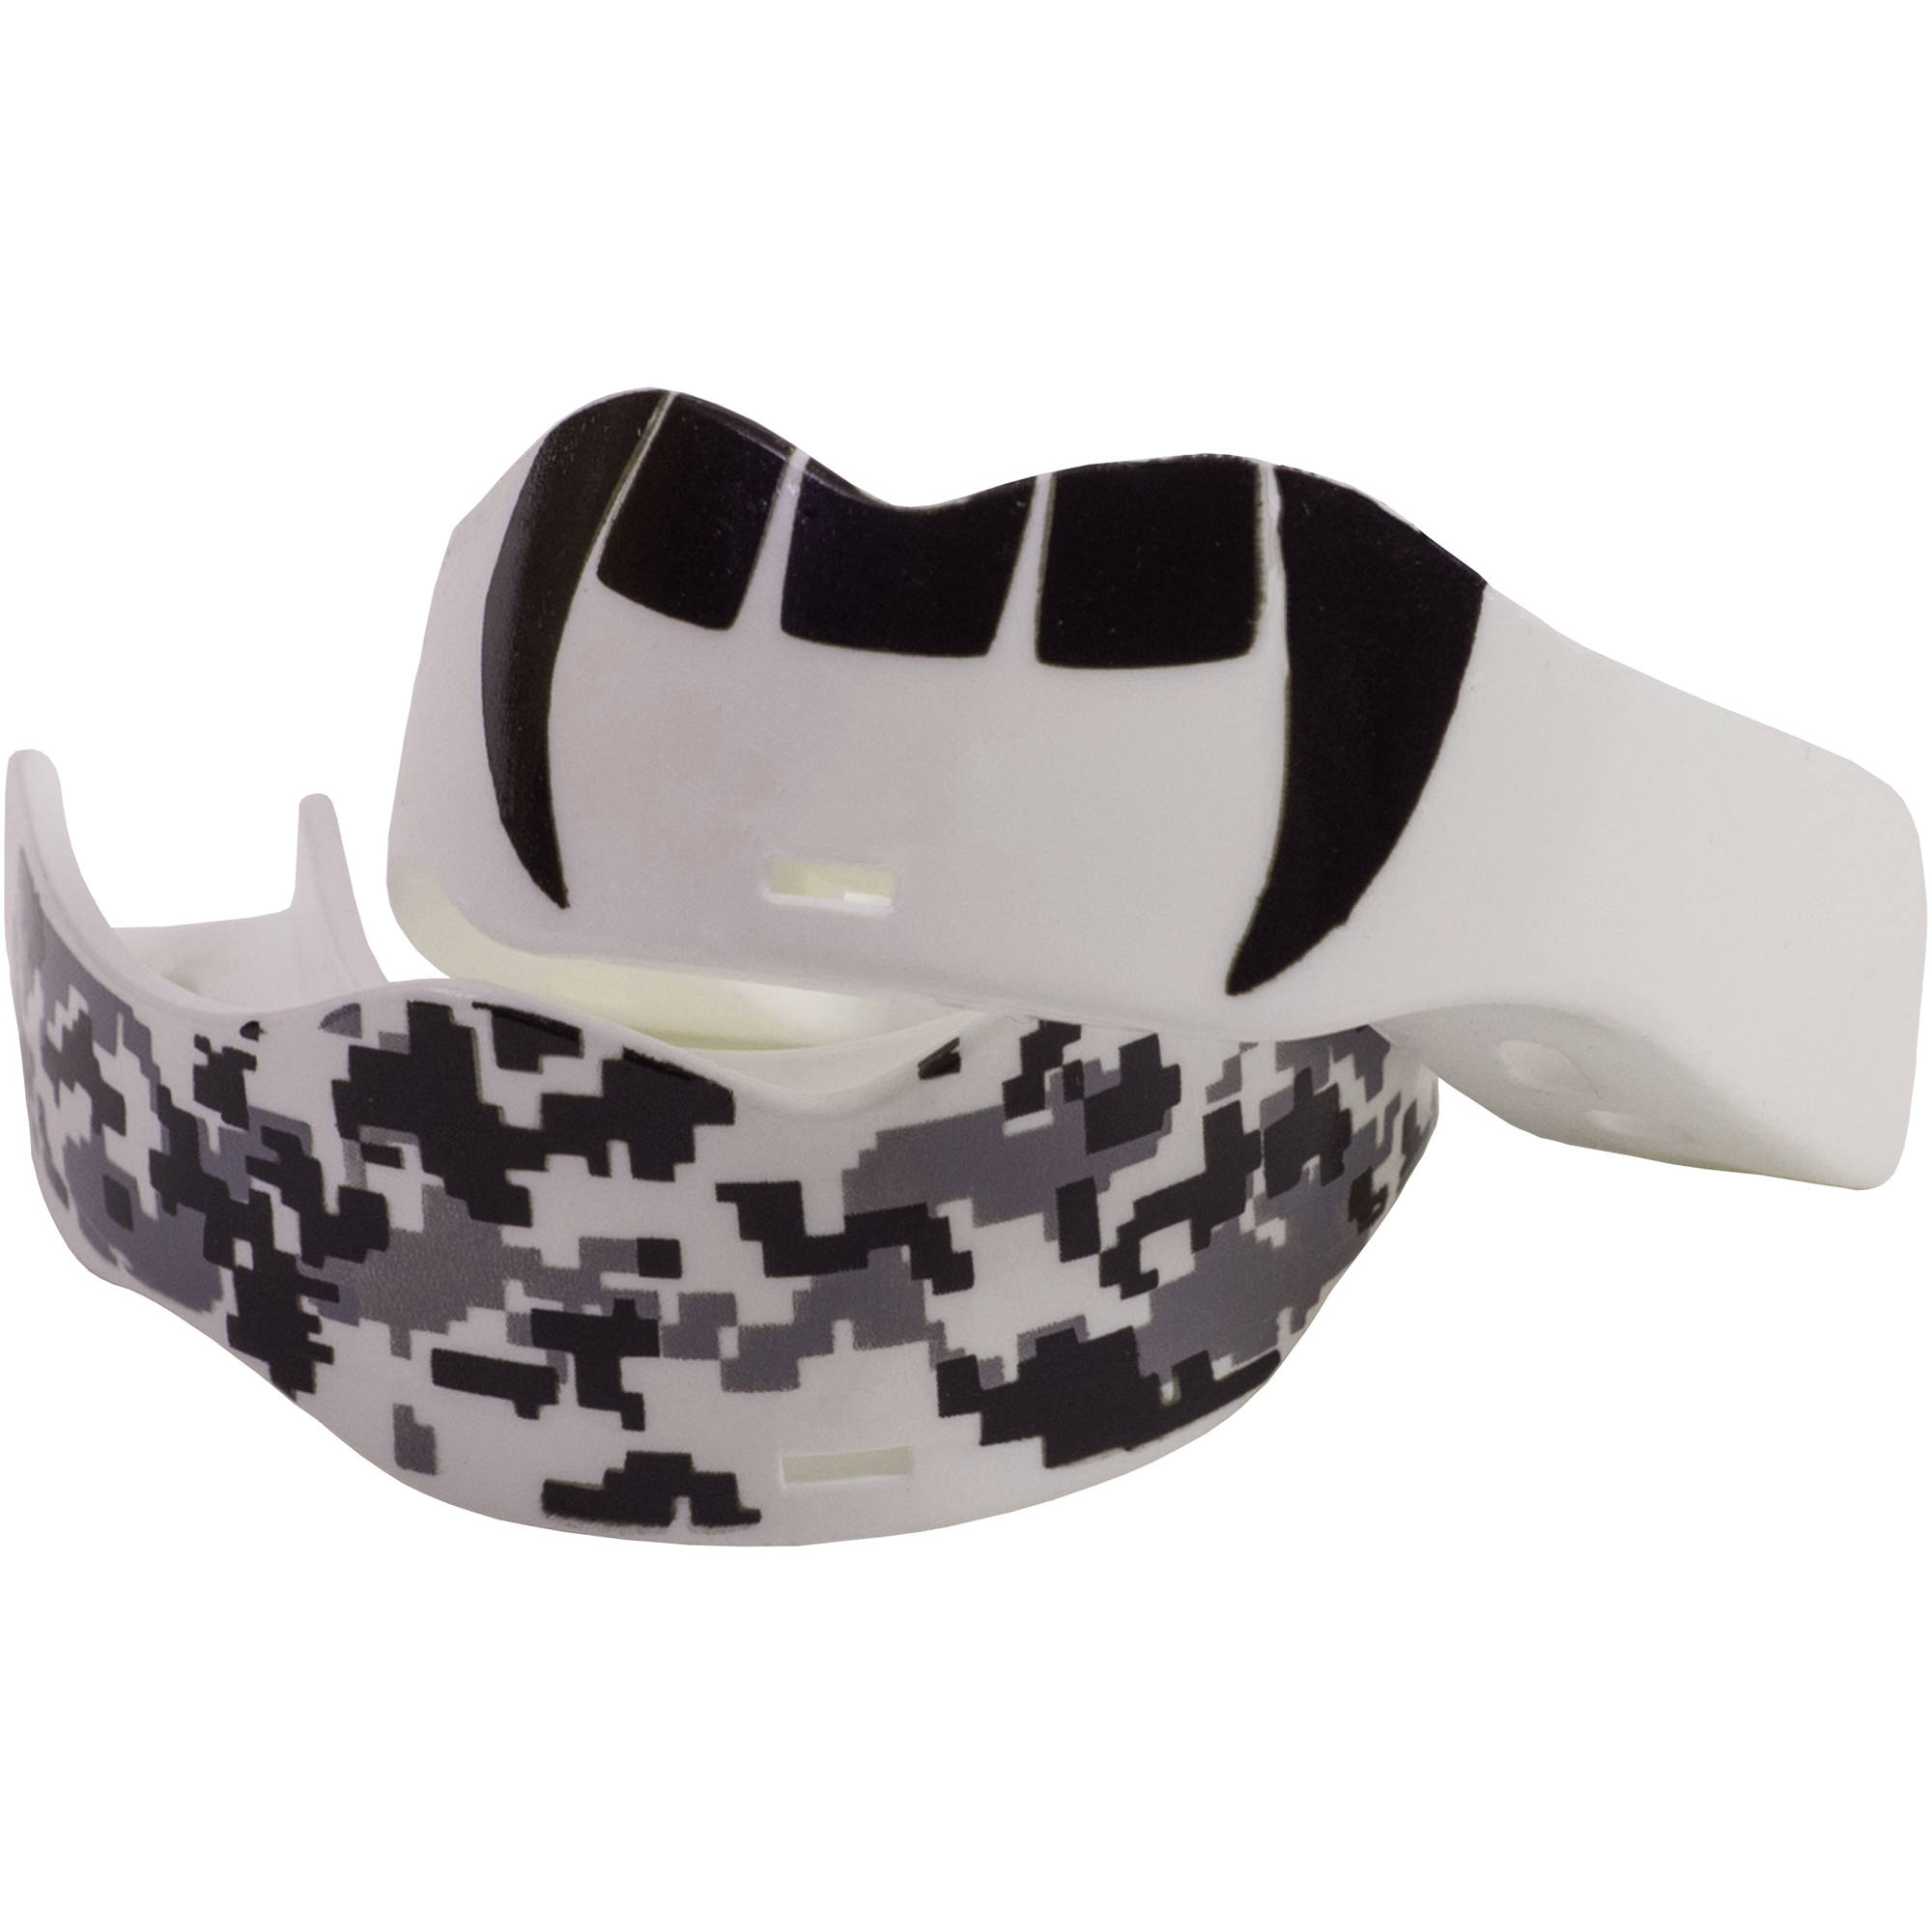 Soldier Sports Custom 7312 Mouthguard, White